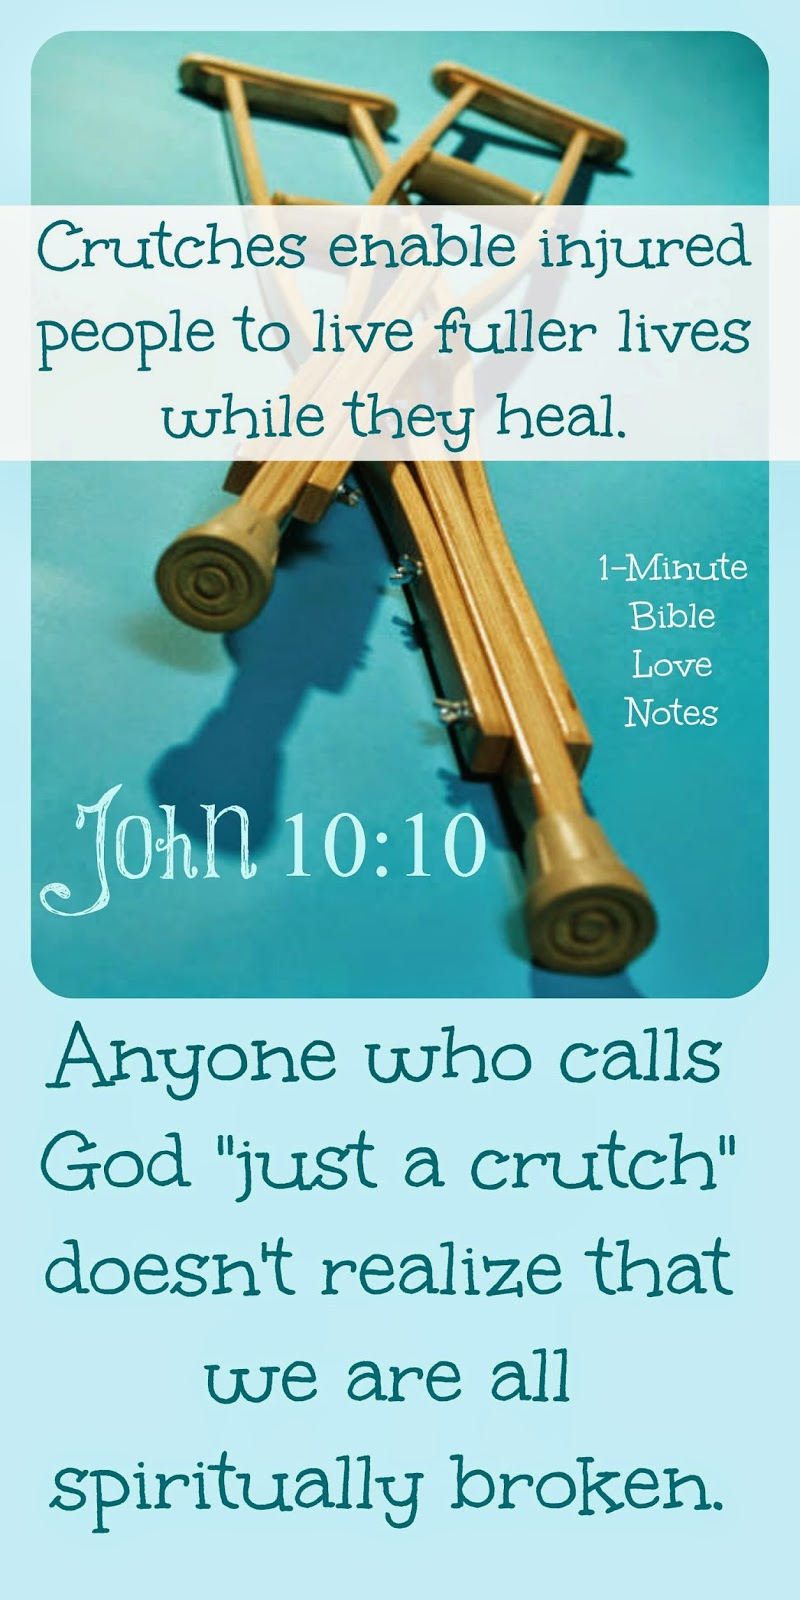 Knee walker, crutches, God is just a crutch, religion is just a crutch, we are all broken and need God